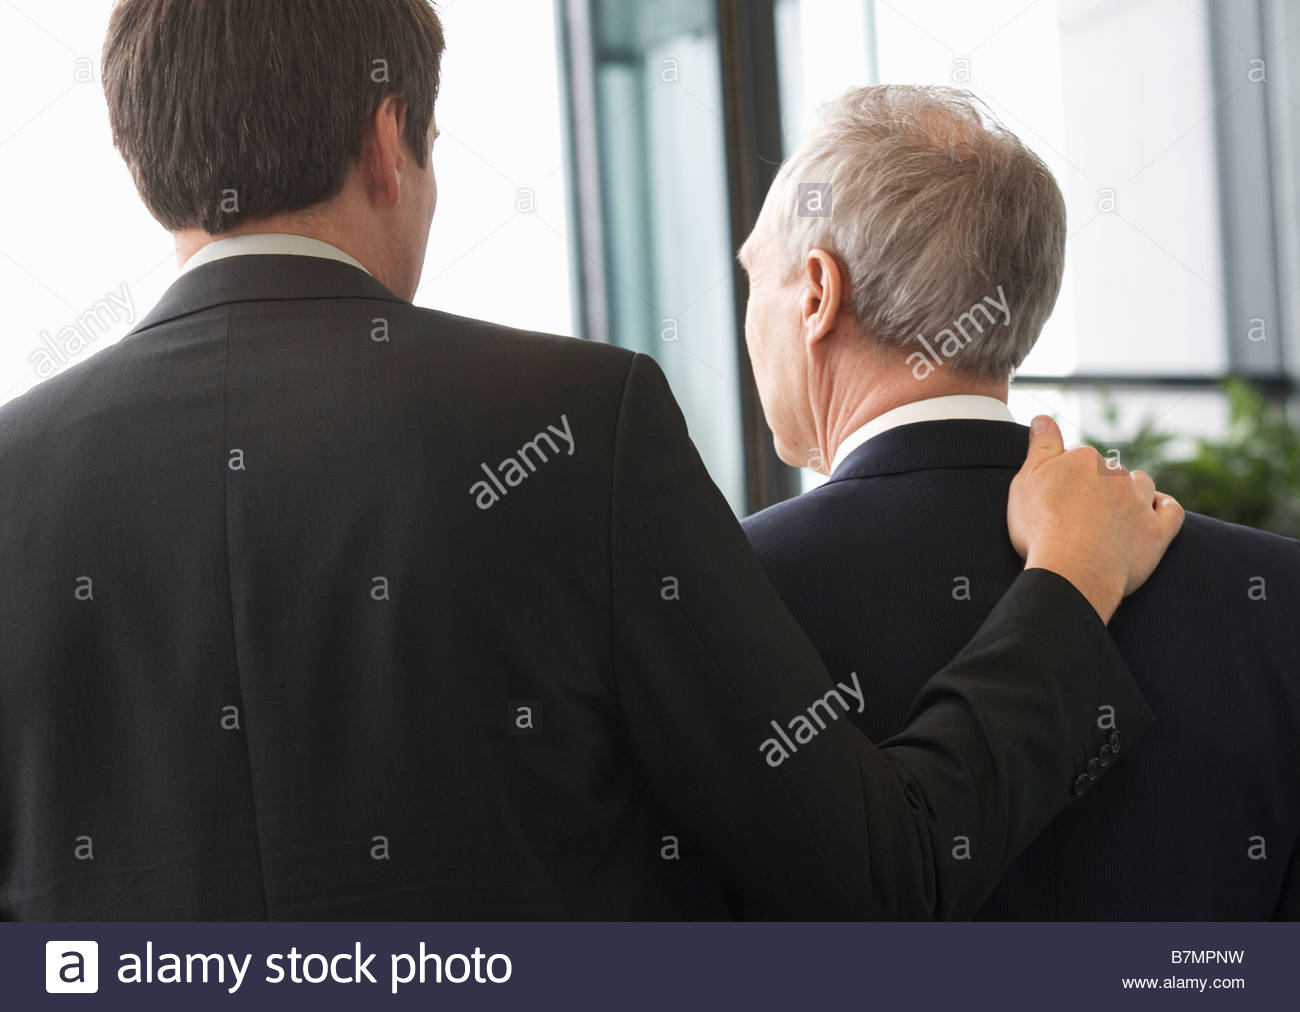 Two businessman leaving an office building - Stock Image